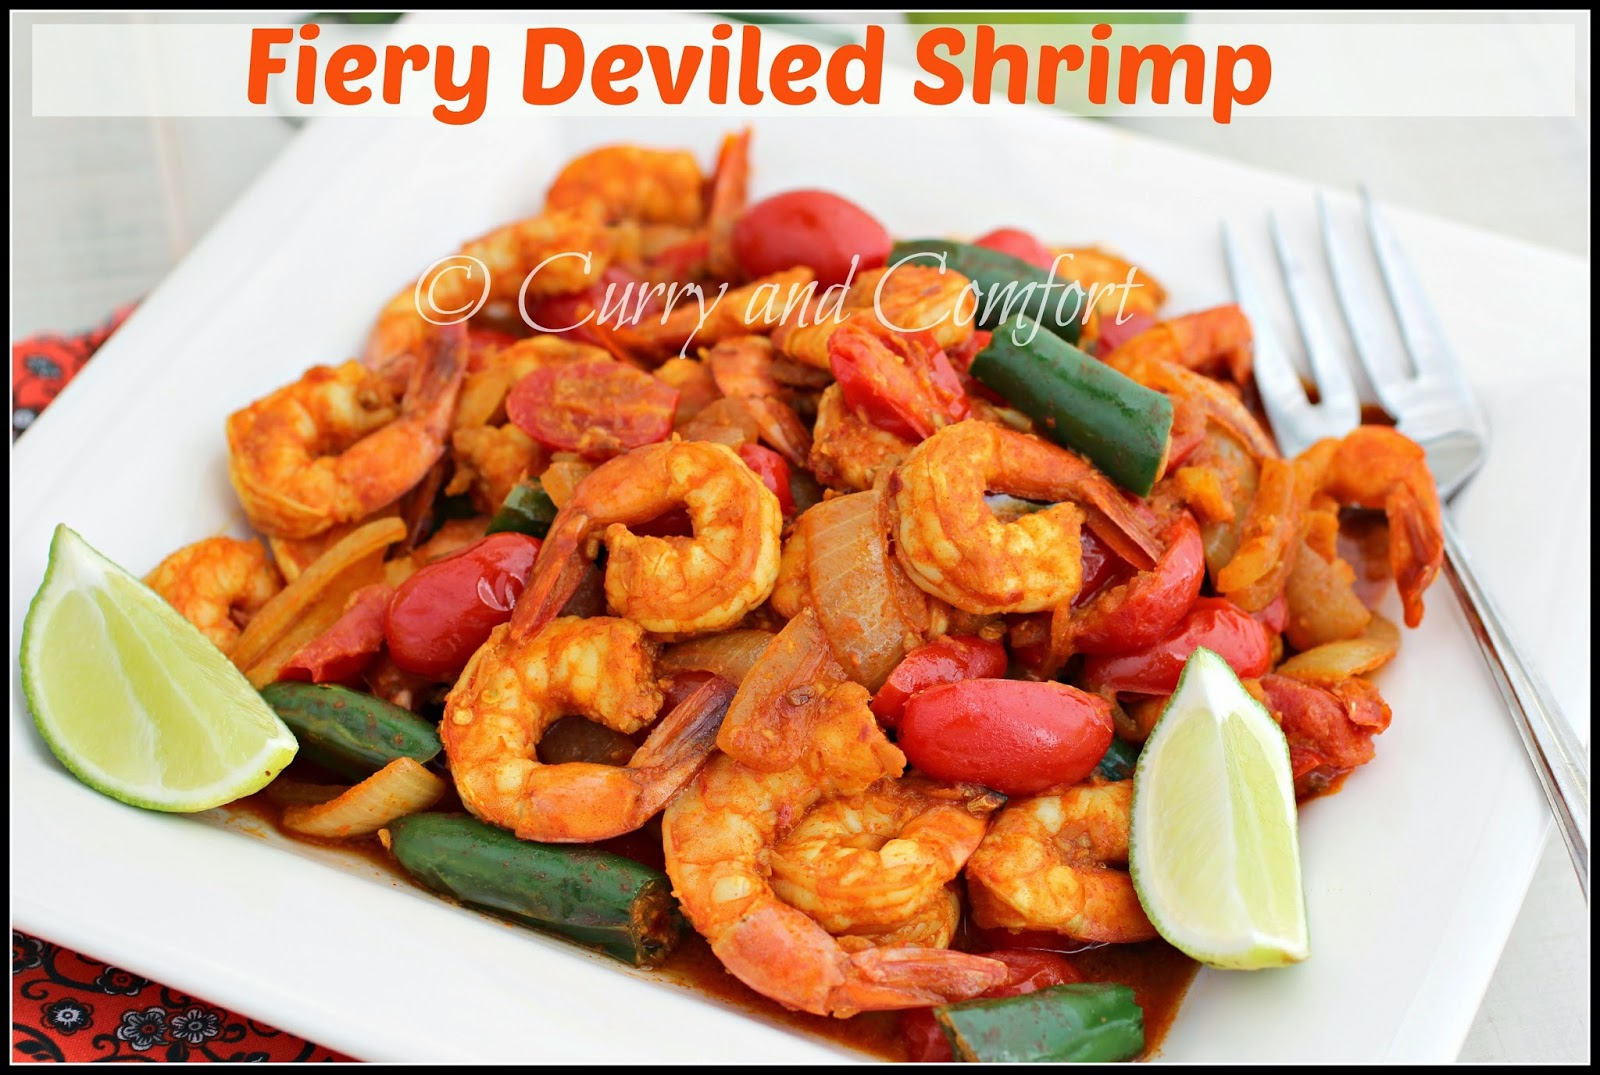 Curry and Comfort: Fiery Deviled Shrimp Curry